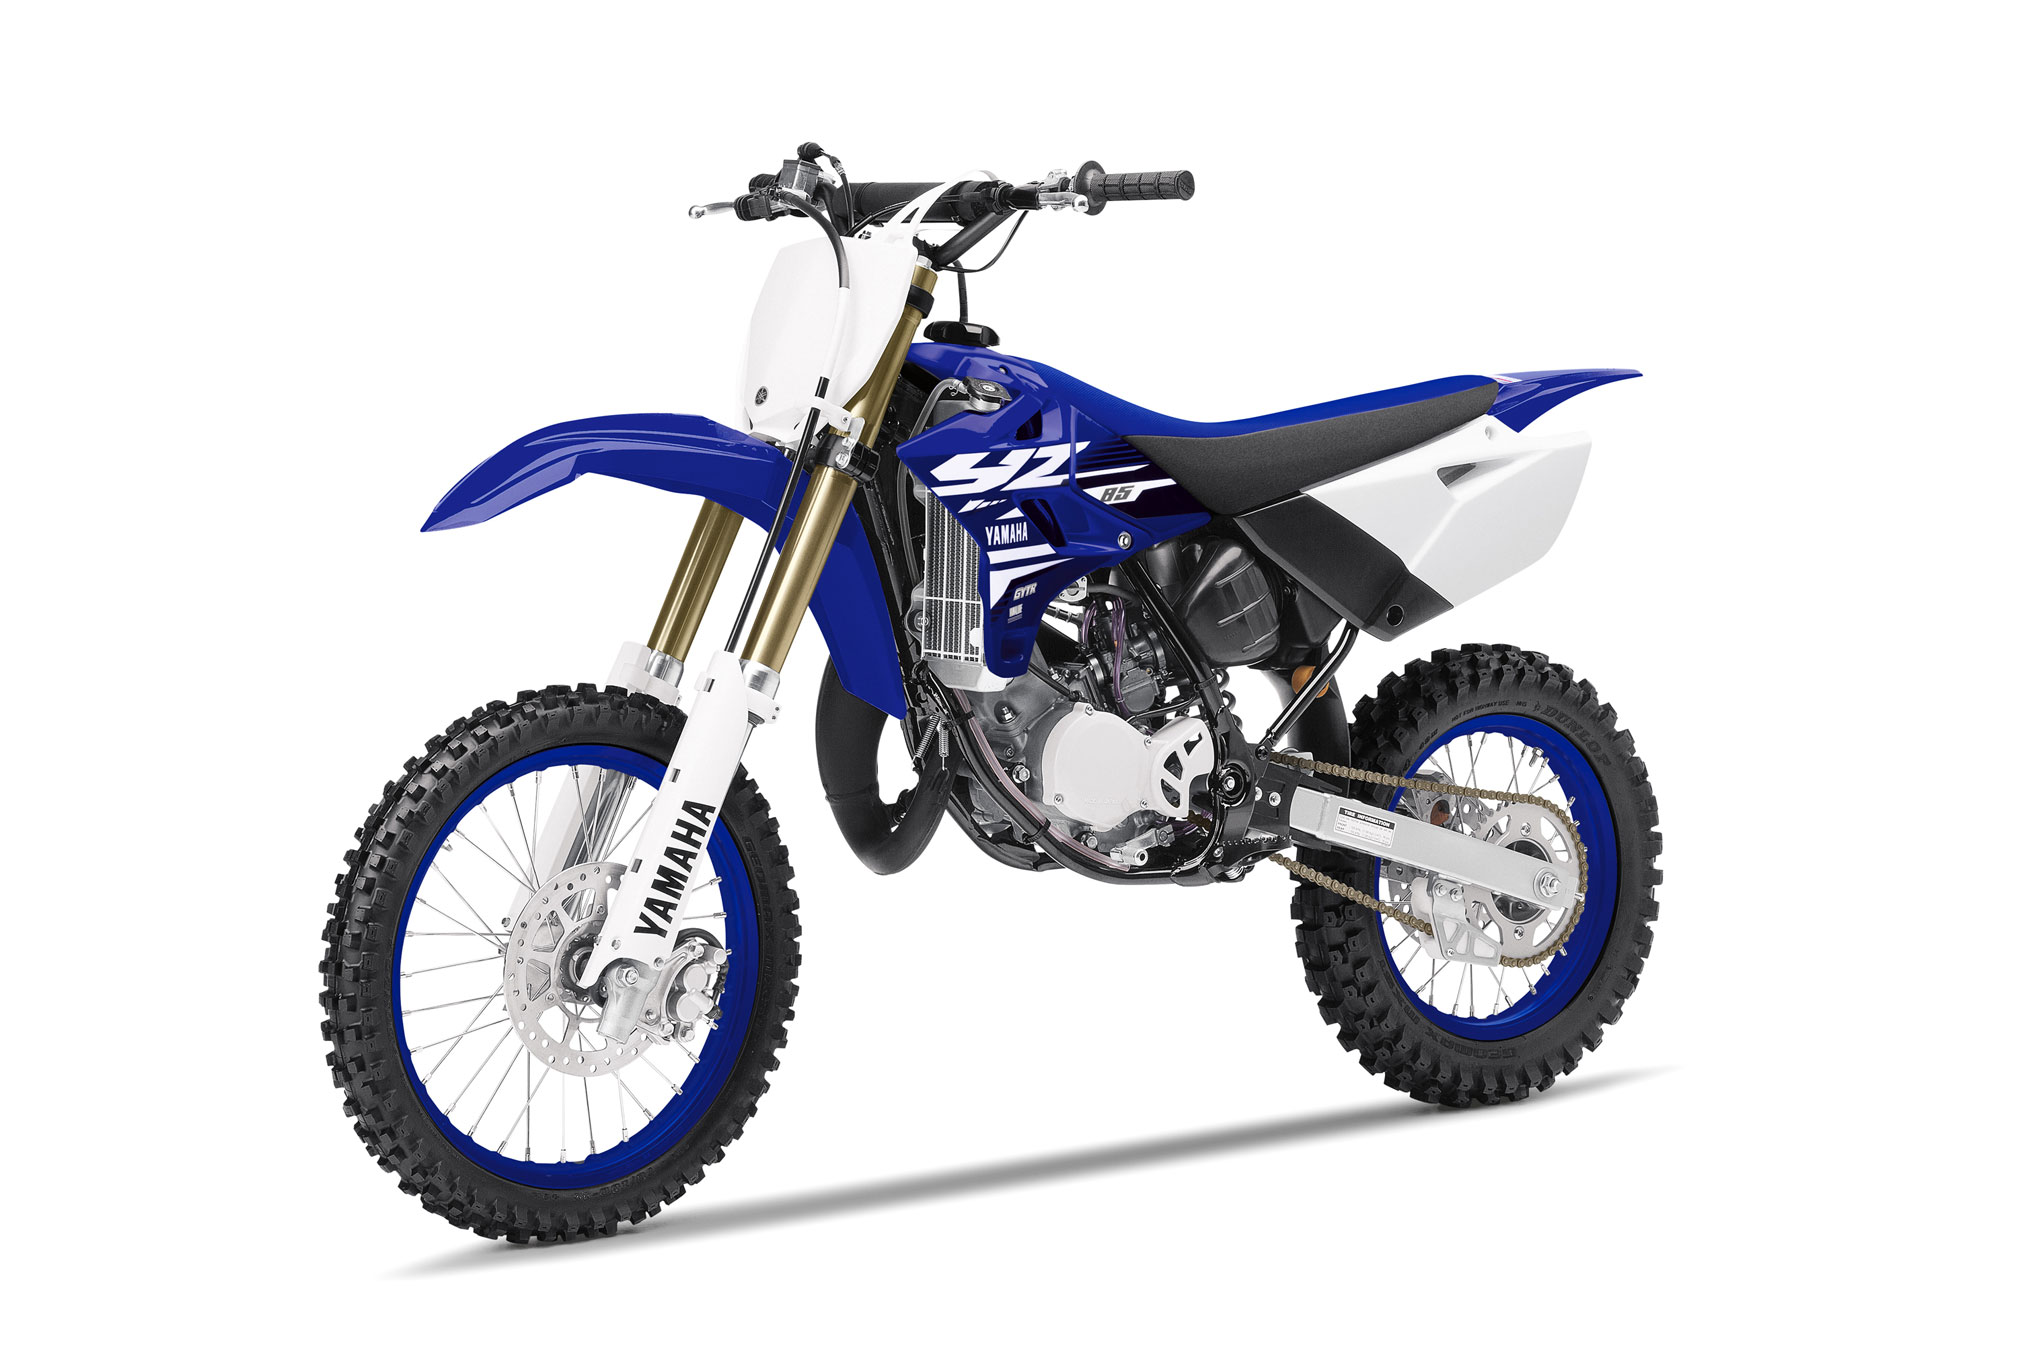 2018 yamaha yz85 review total motorcycle. Black Bedroom Furniture Sets. Home Design Ideas